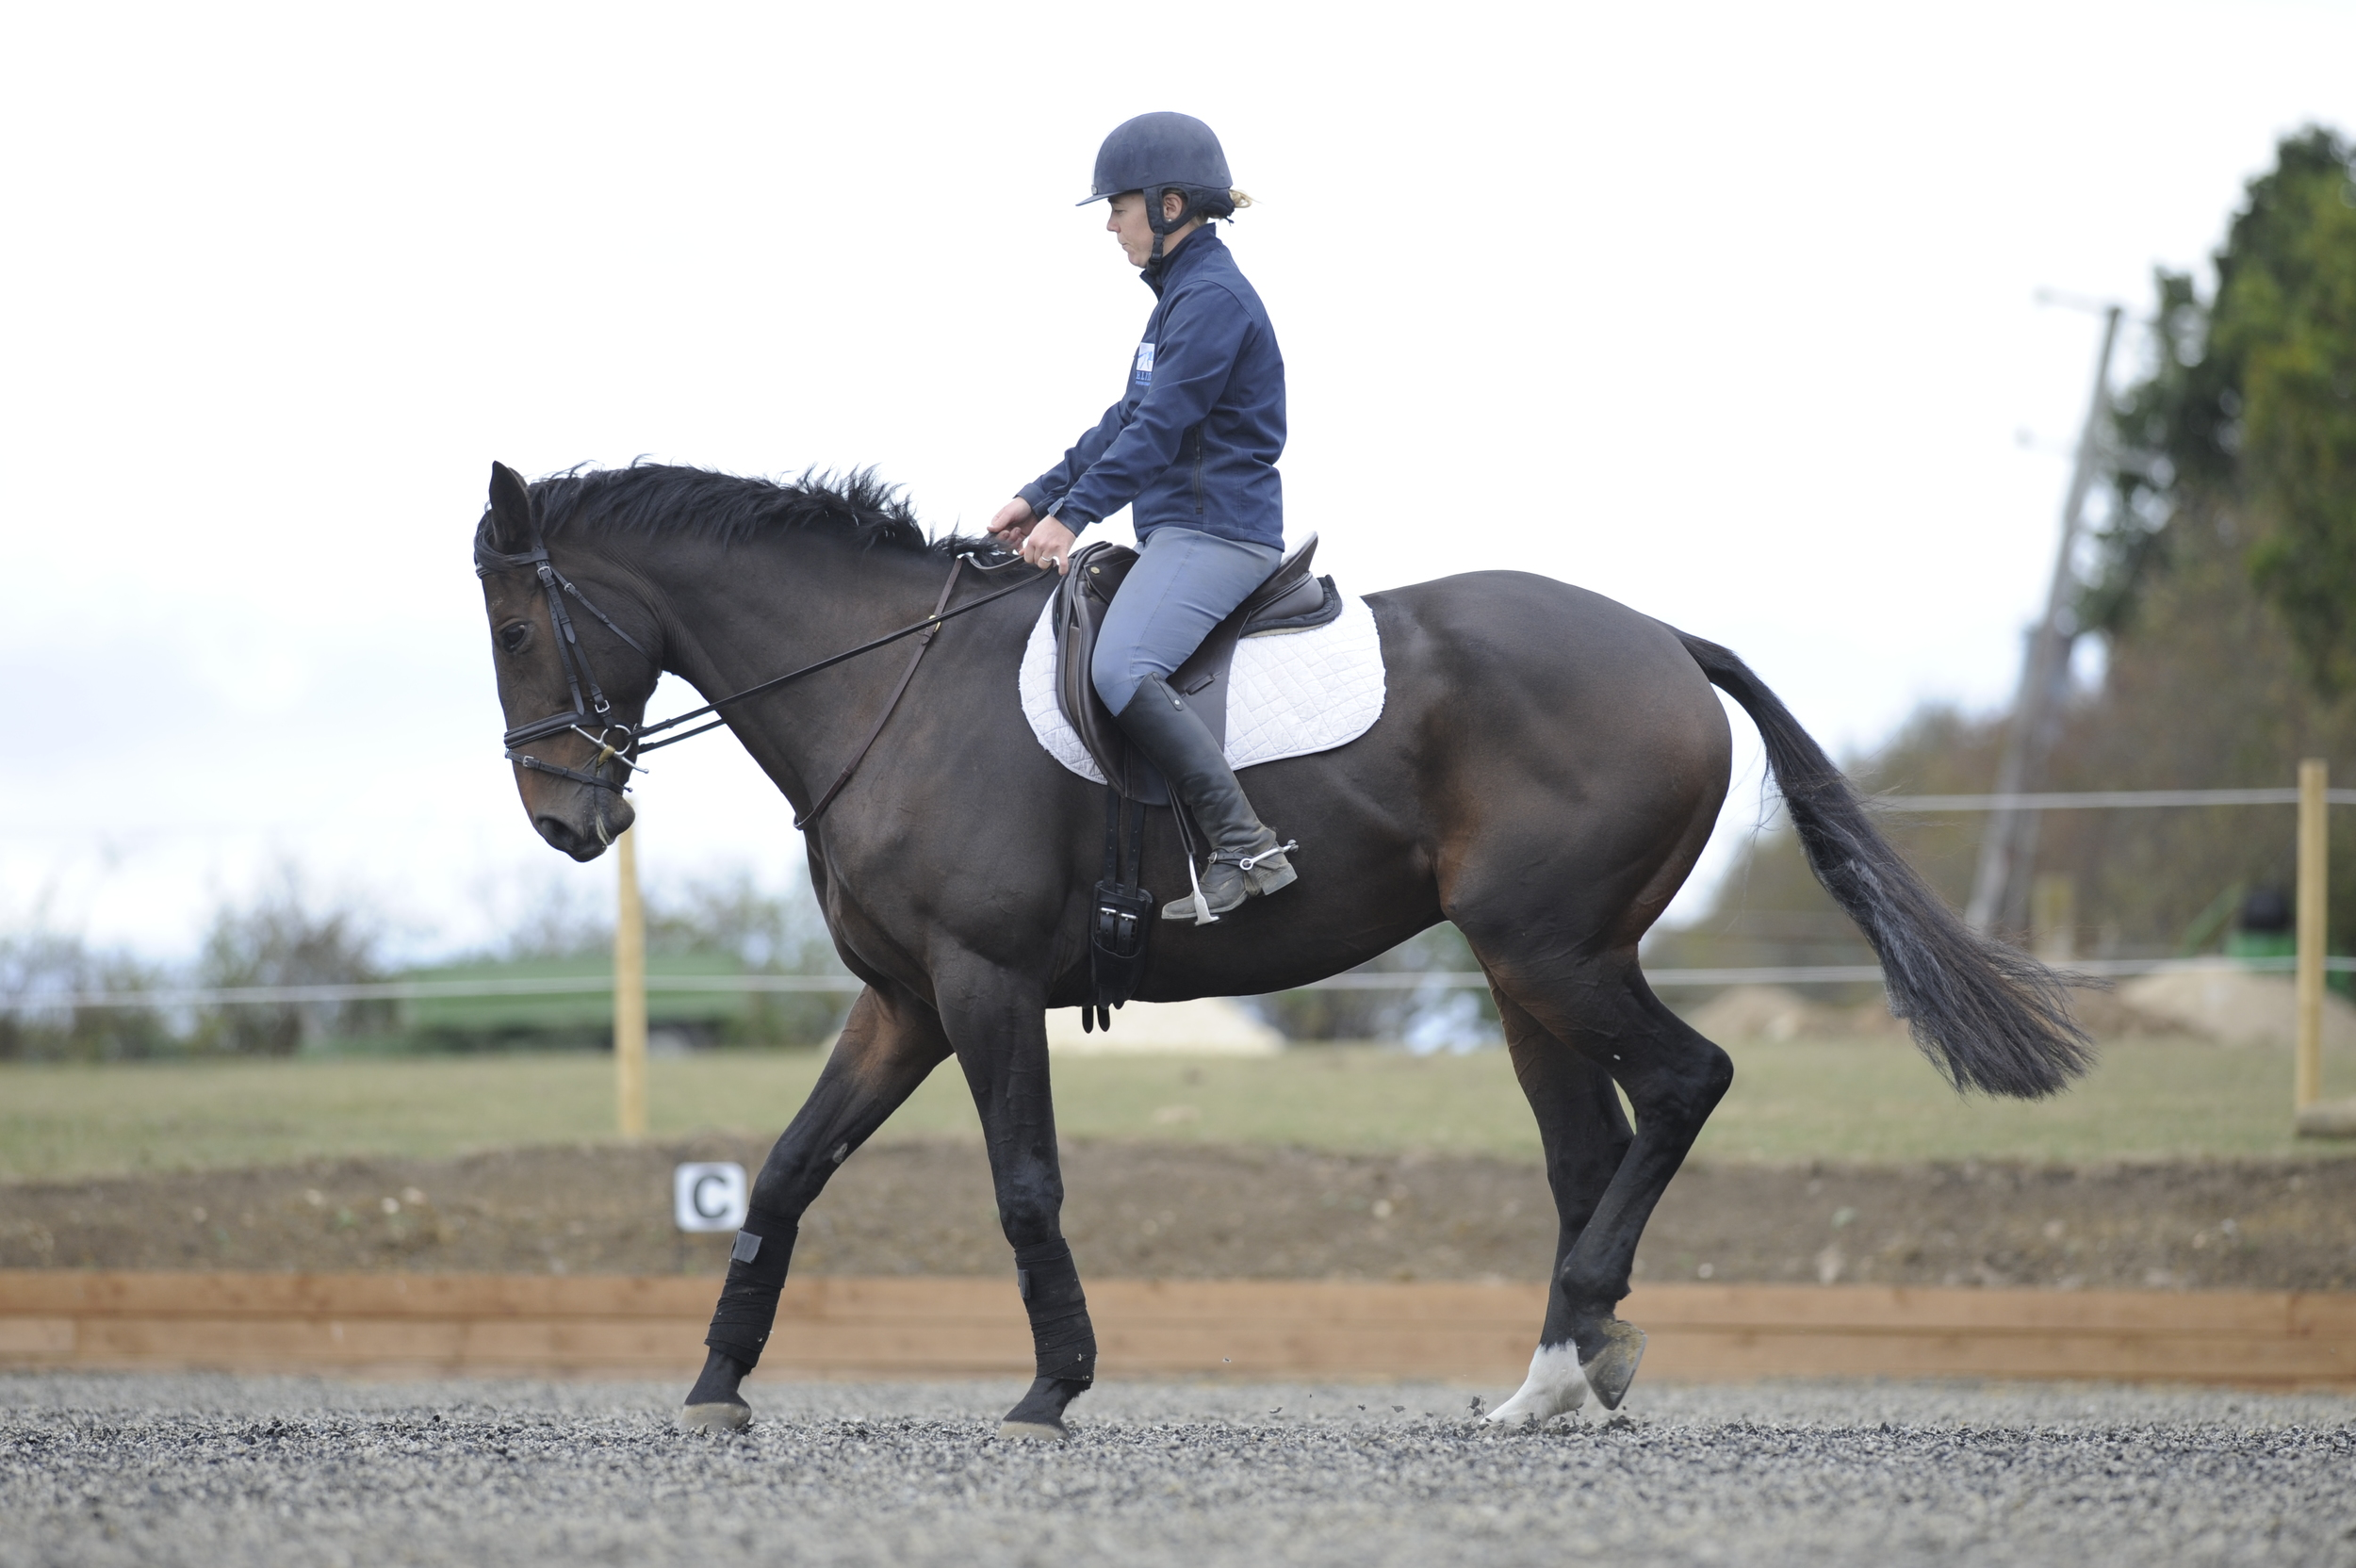 To ask your horse to rein-back, lighten your seat, bring your lower leg back slightly and apply even pressure on the rein